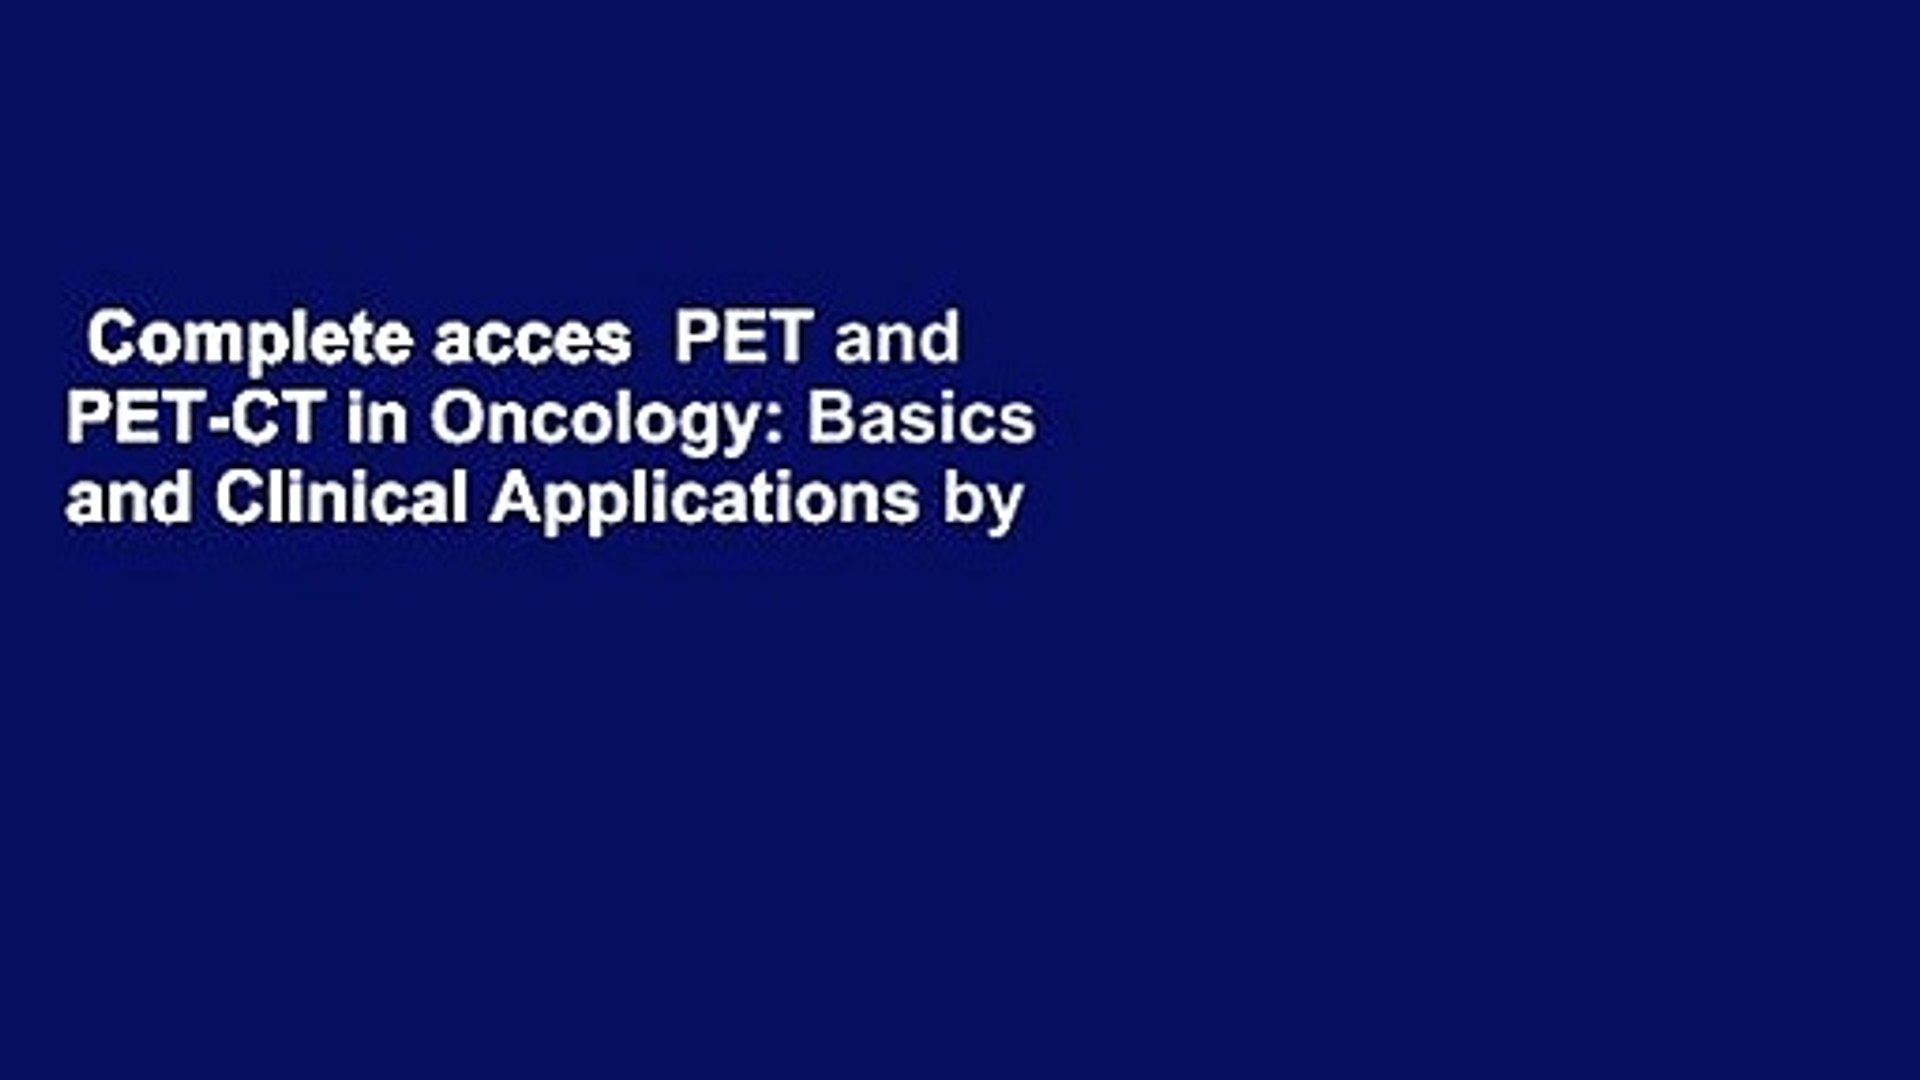 Complete acces  PET and PET-CT in Oncology: Basics and Clinical Applications by